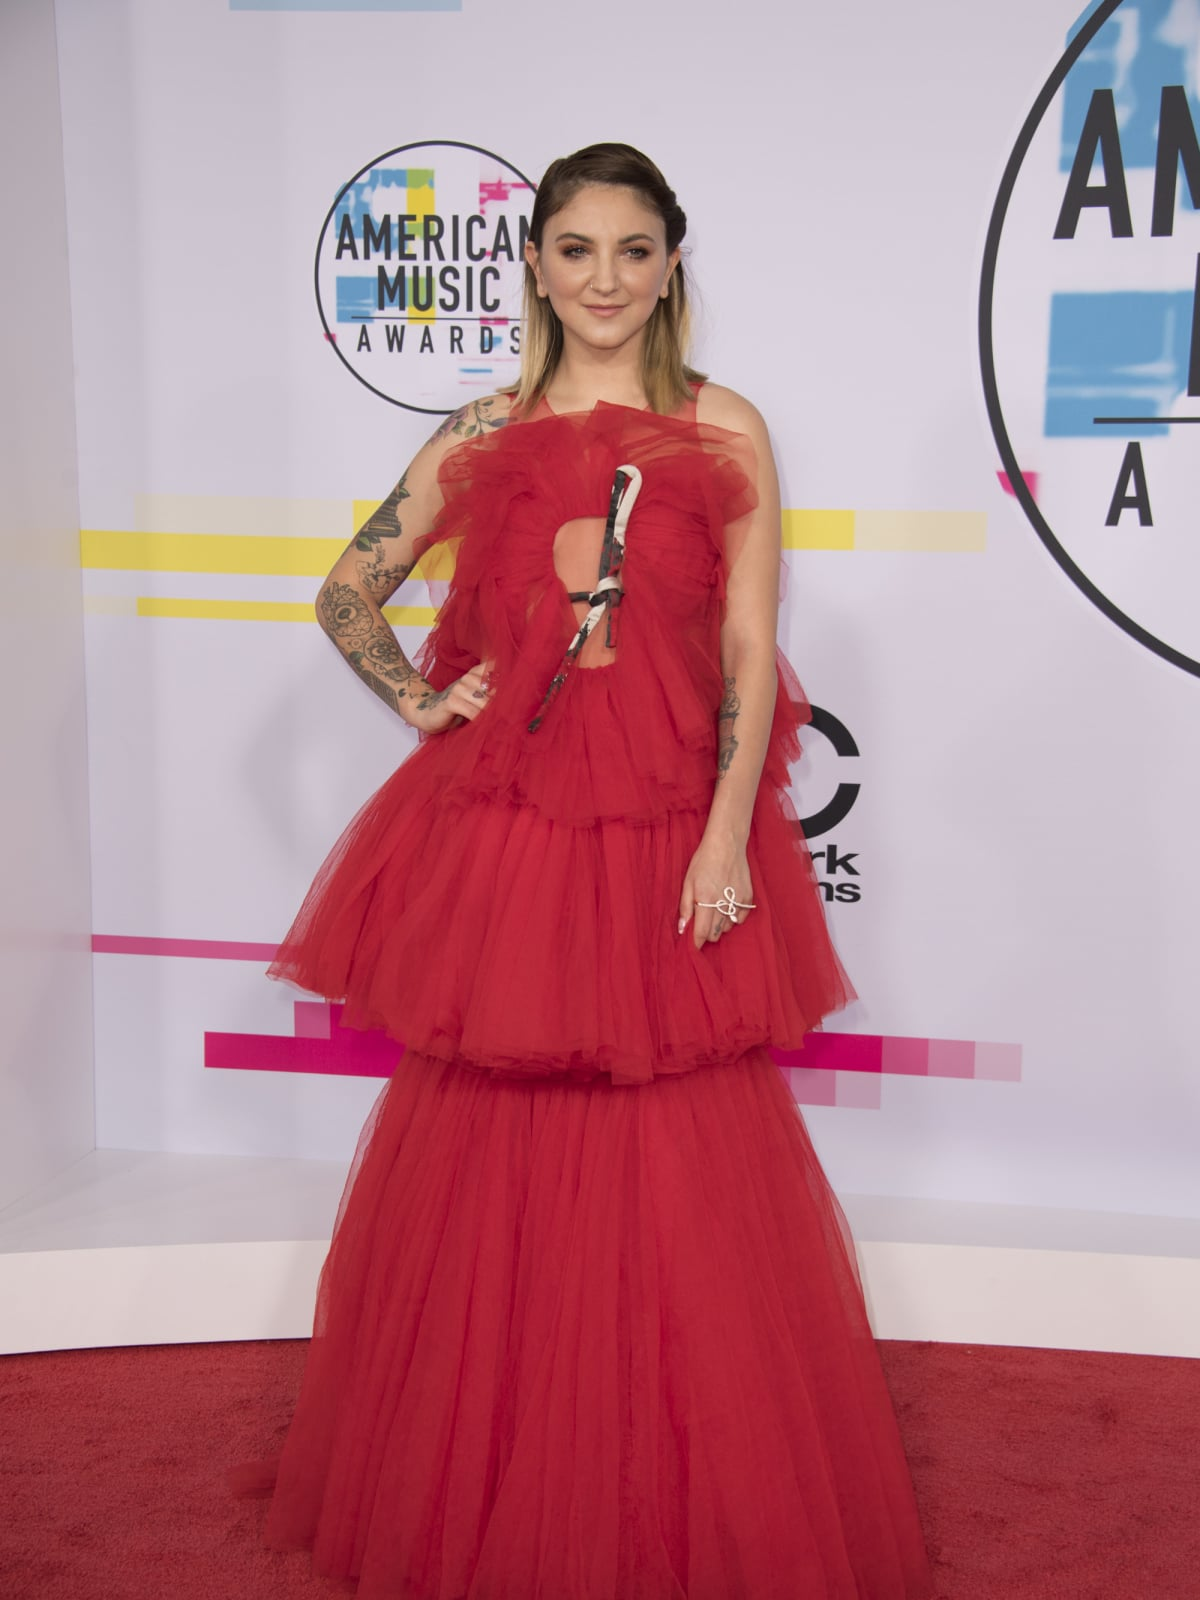 American Music Awards Julia Michaels